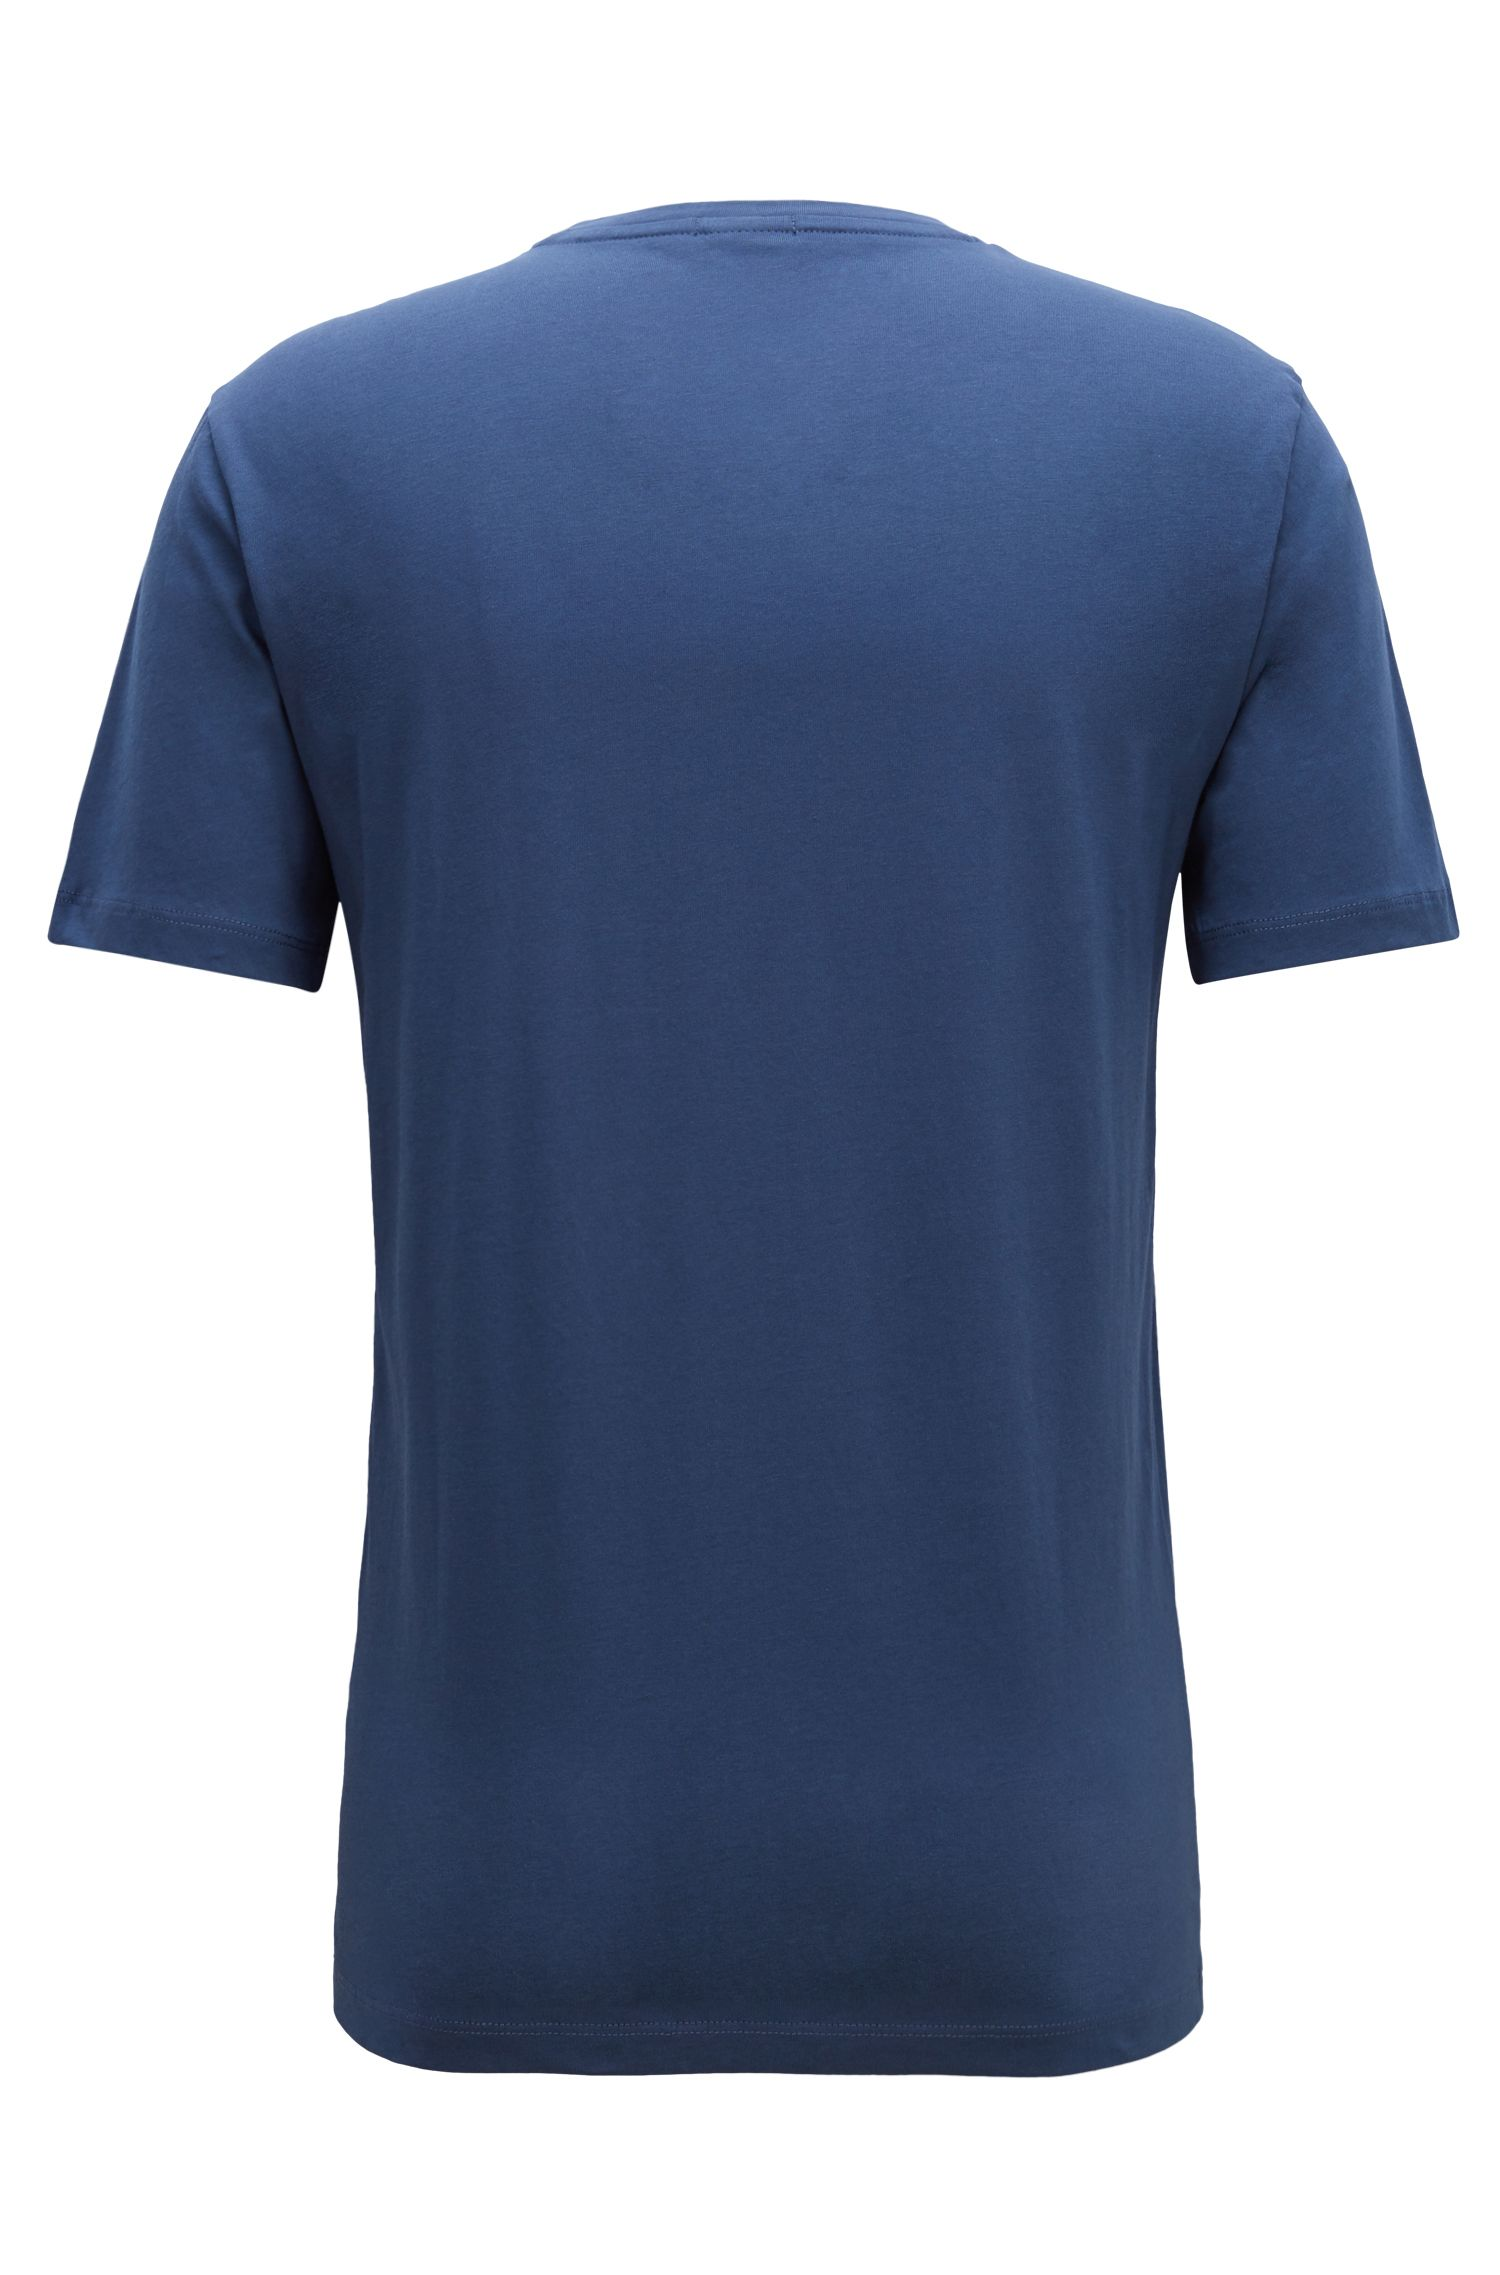 T-Shirt aus Single Jersey mit 3D-Logo, Blau